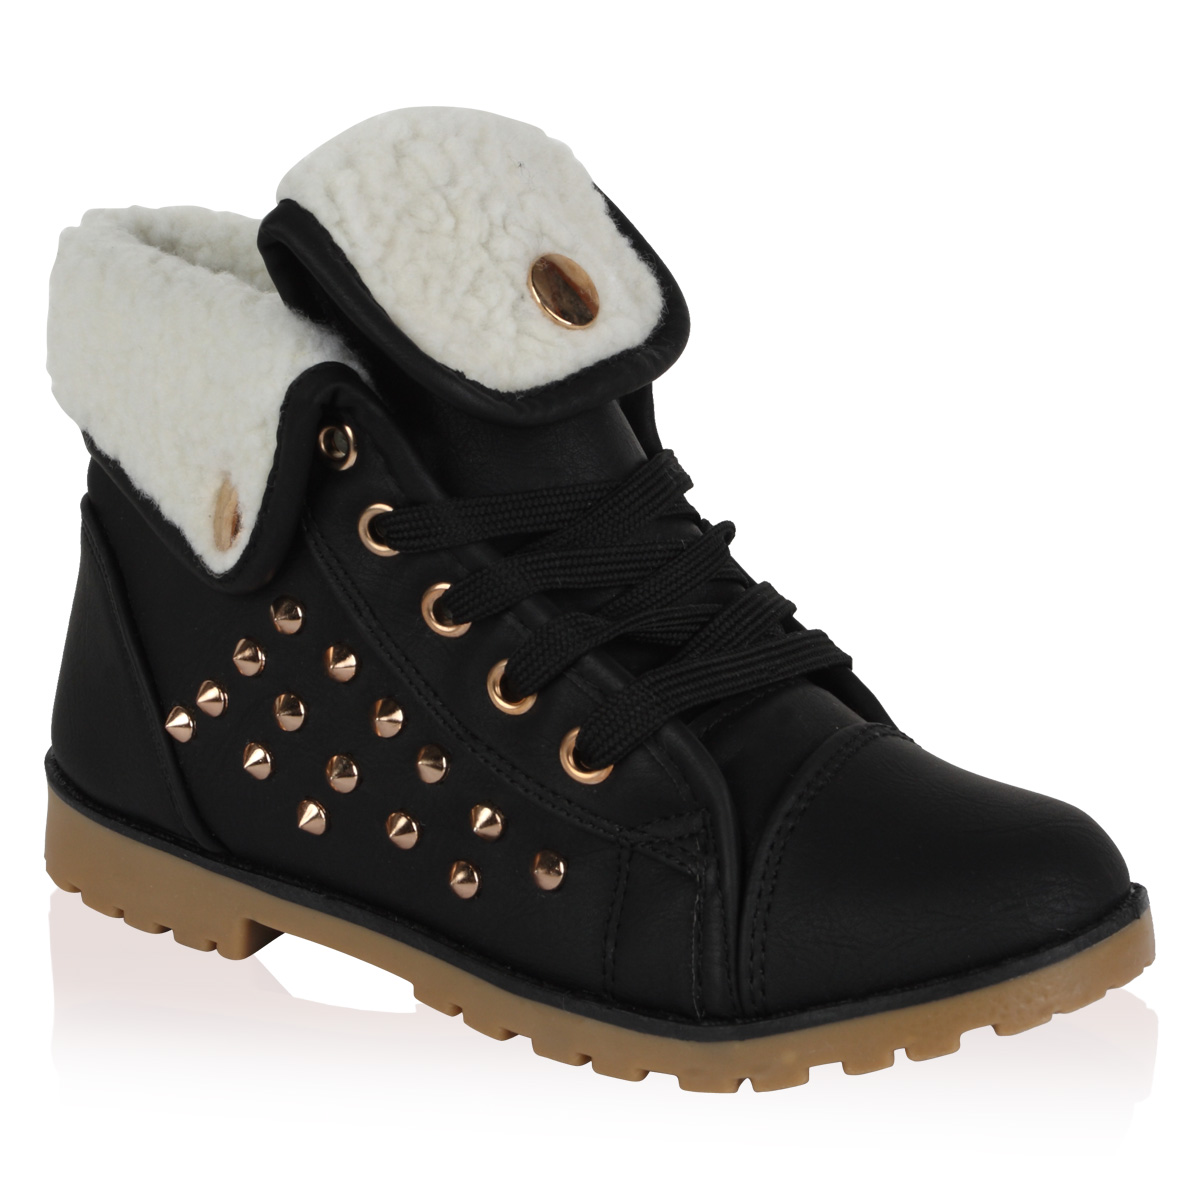 NEW GIRLS BLACK STUDDED KIDS FOLD OVER FLEECE HI TOP TRAINER BOOTS SIZE UK 28-35